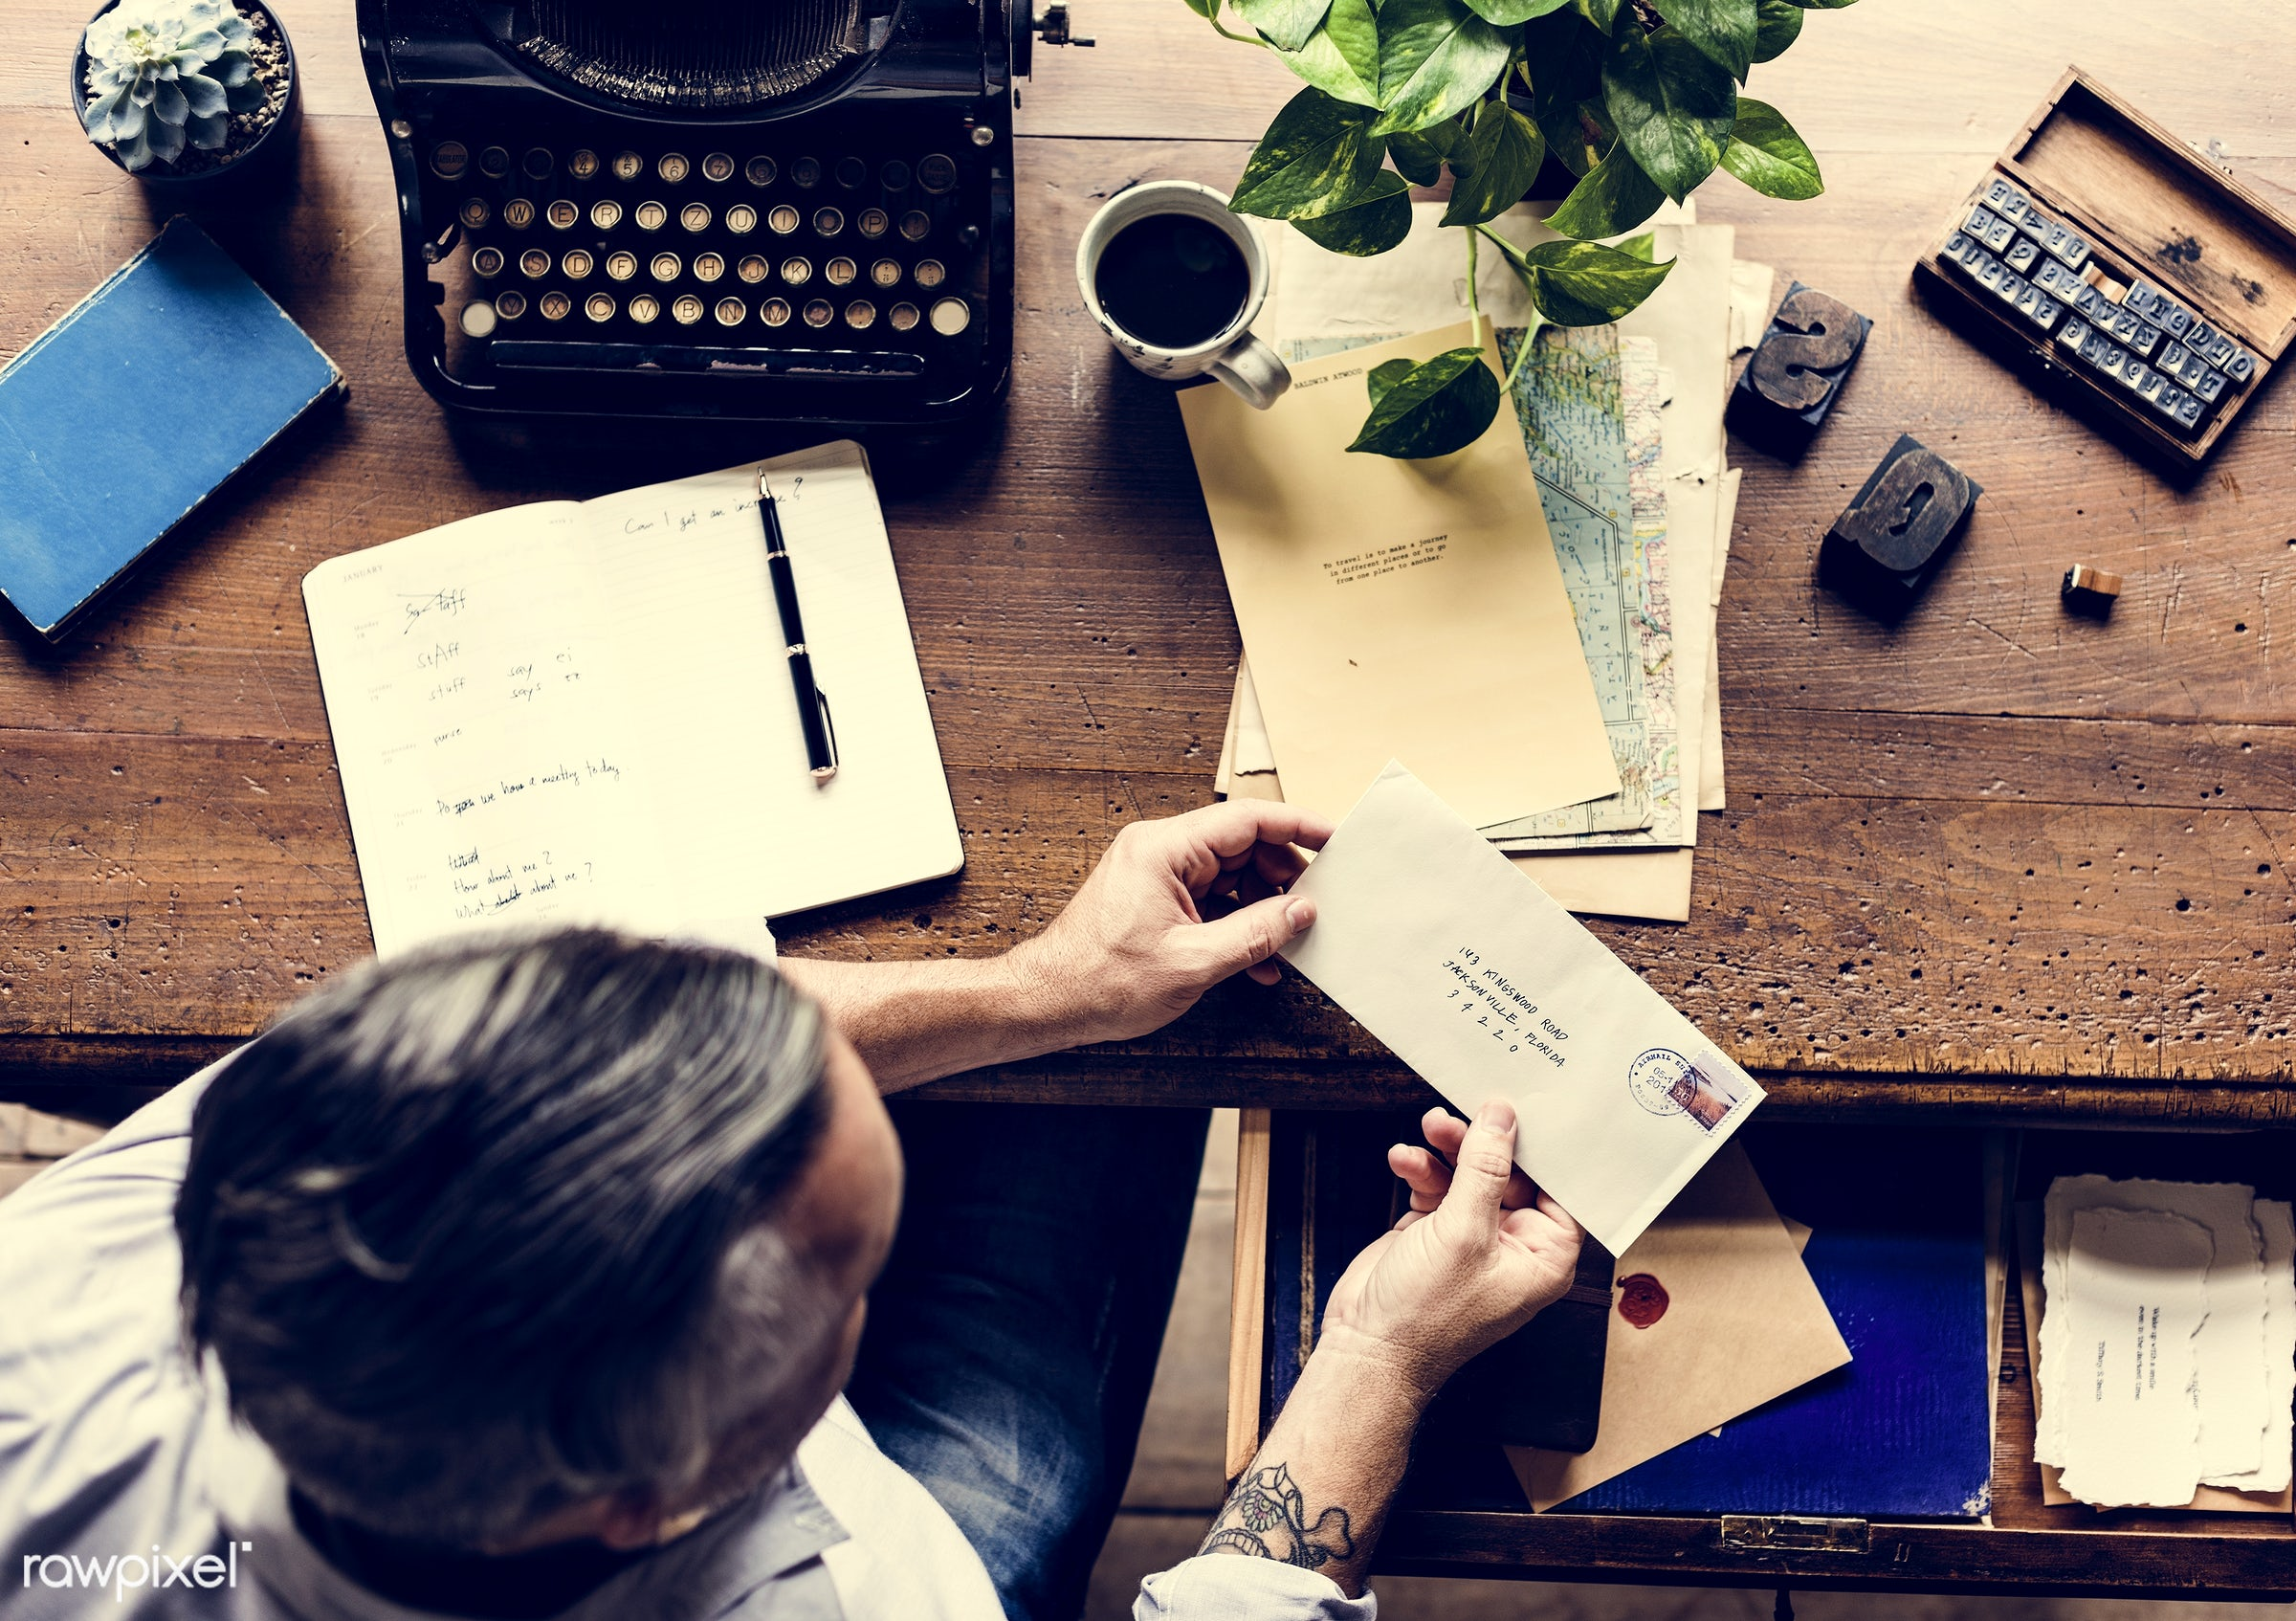 adult, alphabets, ancient, author, coffee, data, document, editorial, envelope, hands, information, keyboard, letter,...